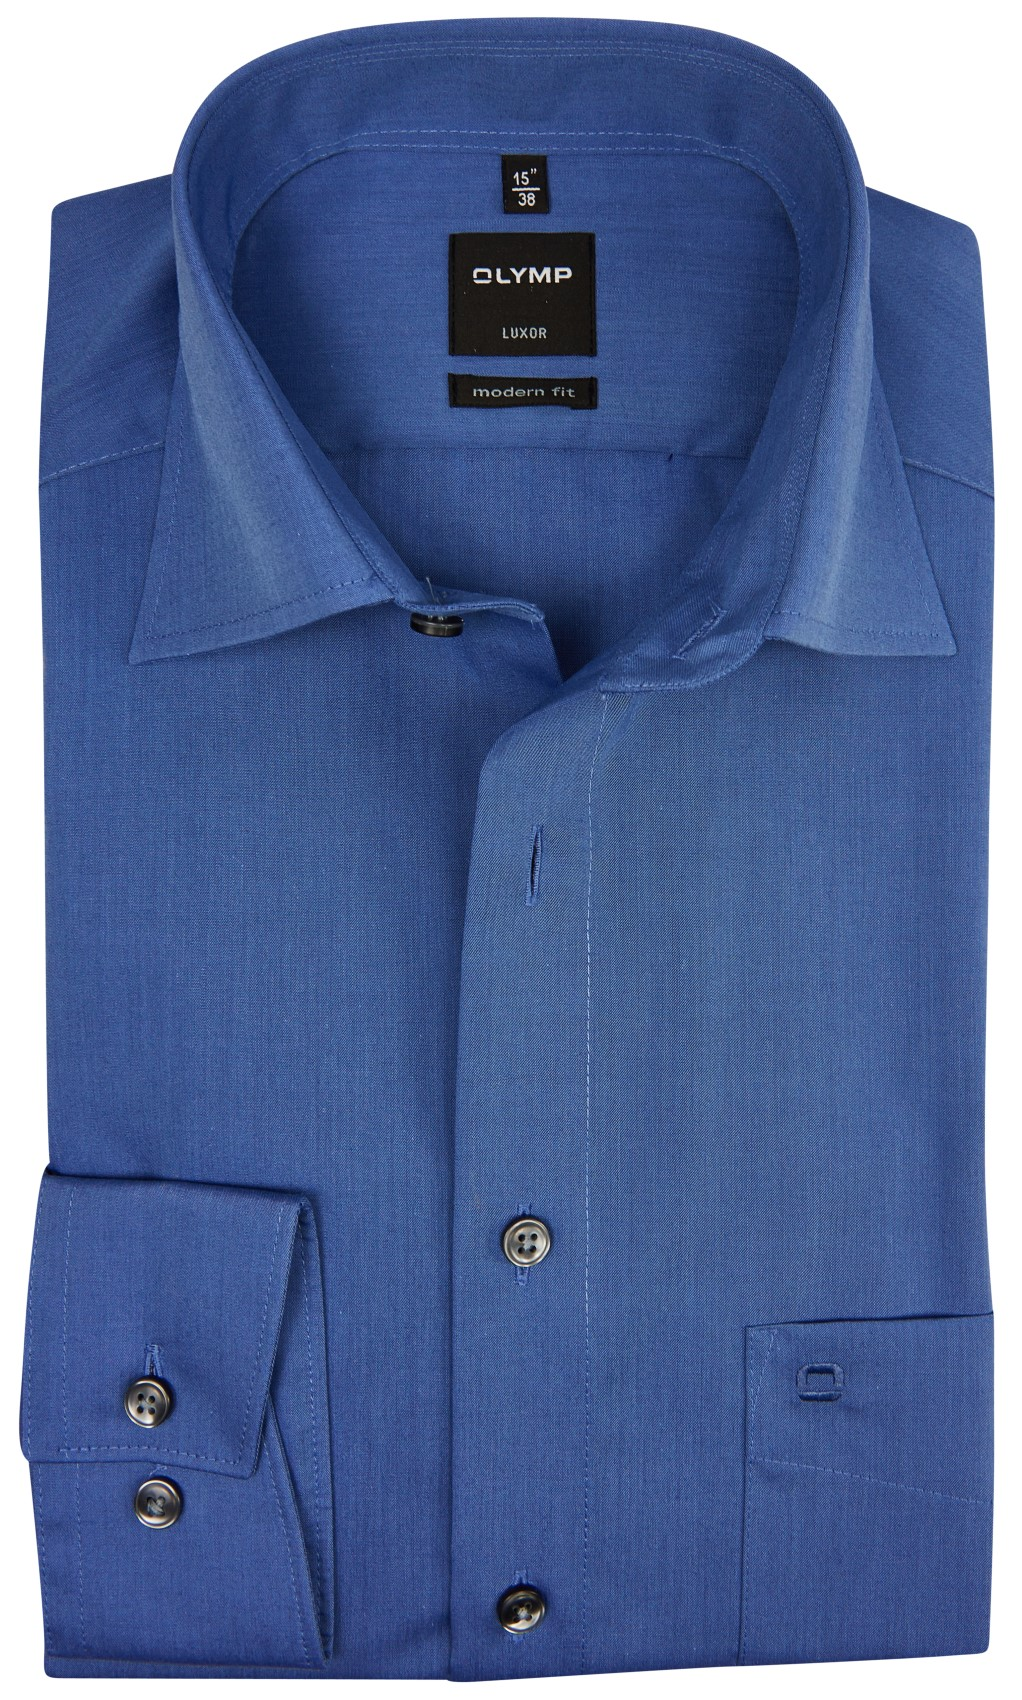 SALE Olymp overhemd modern fit chambray staalblauw